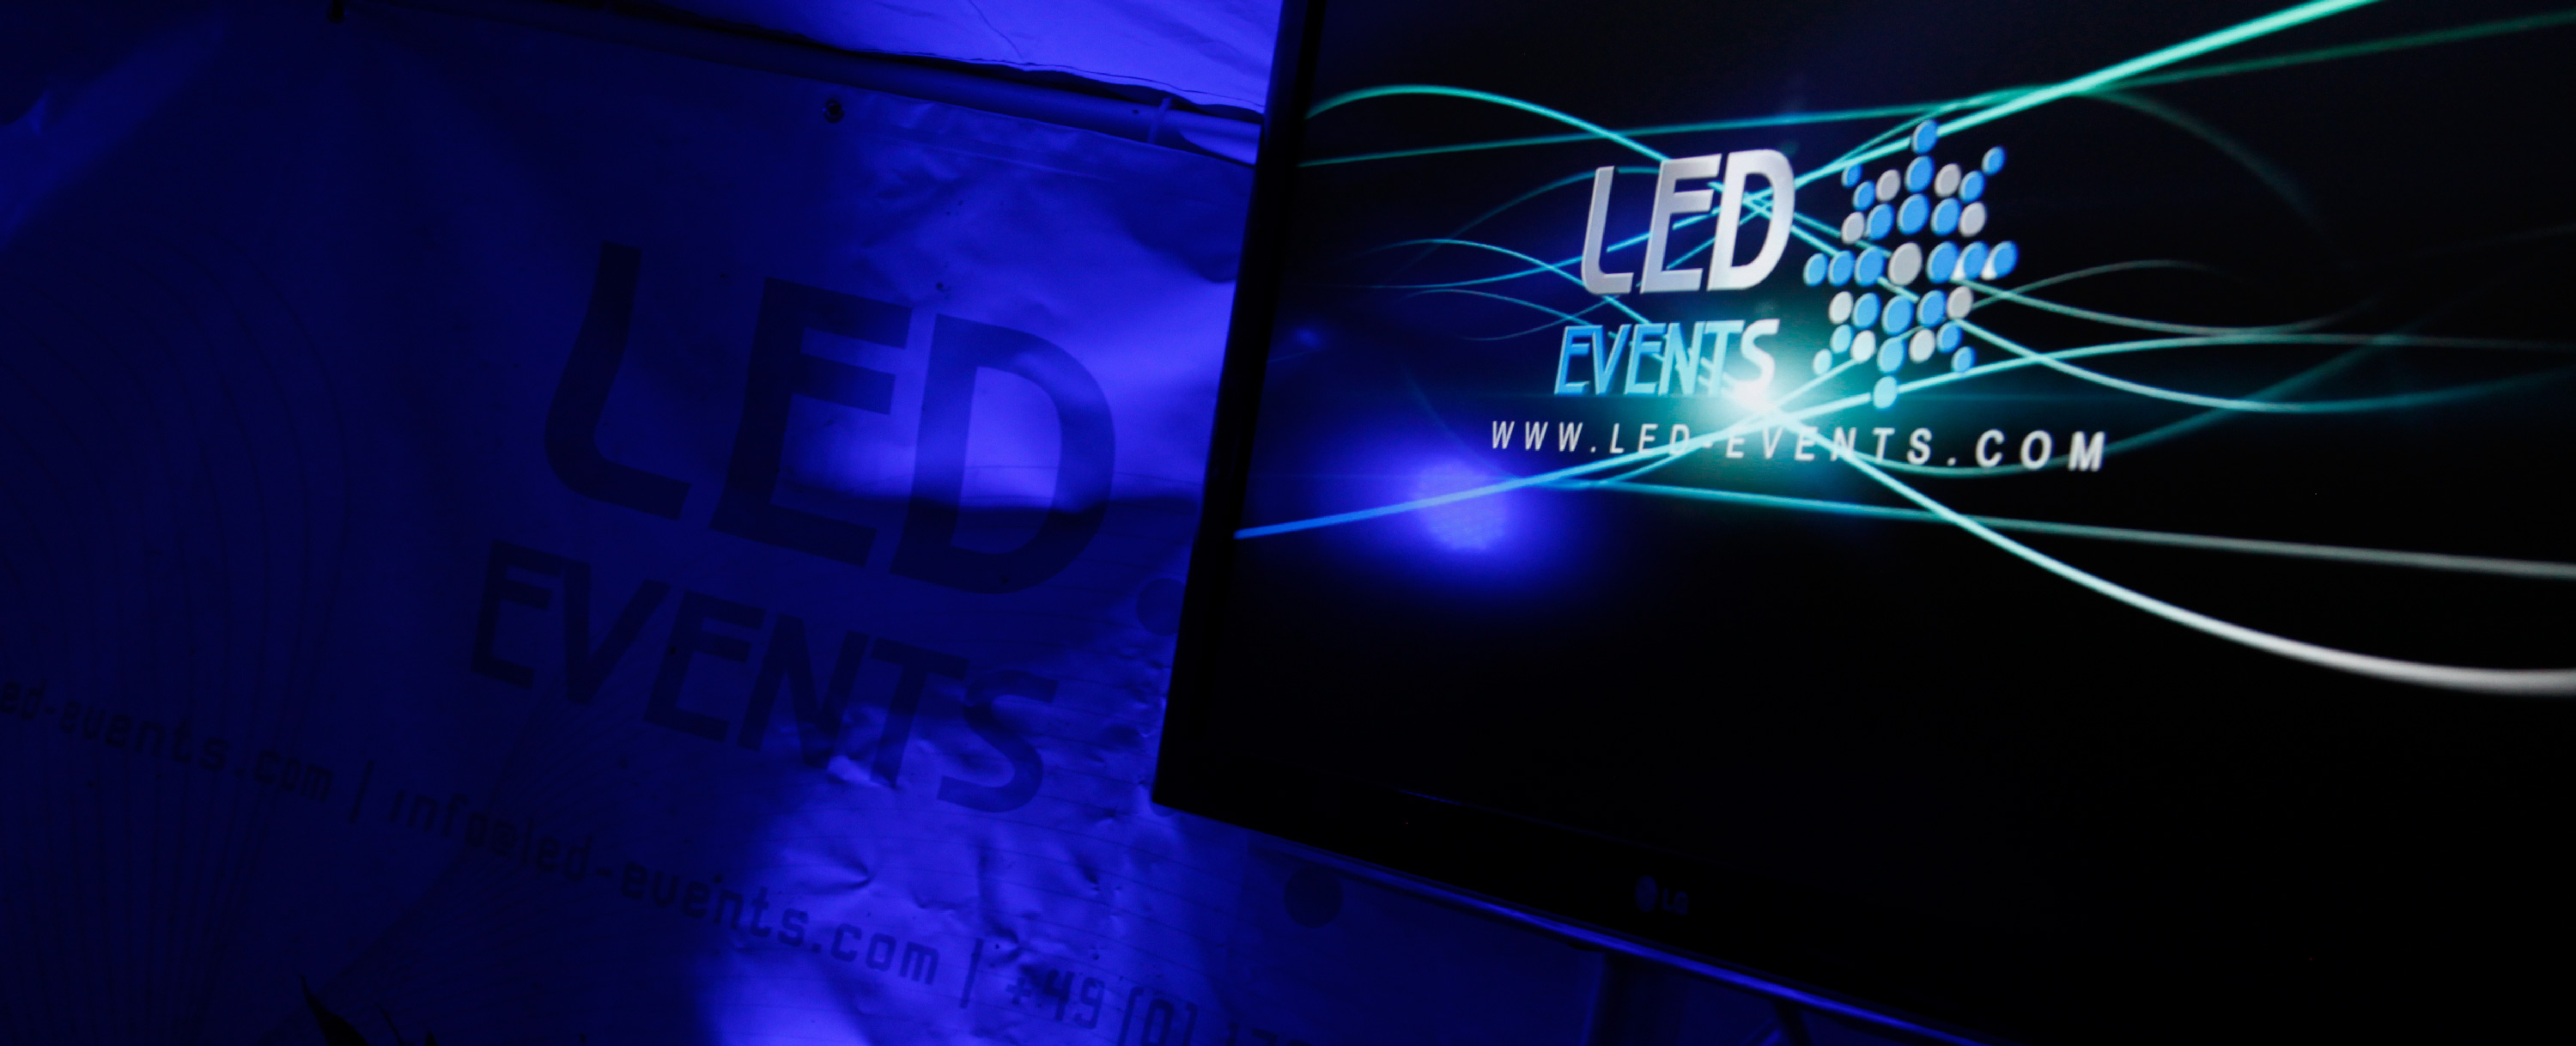 LED Events